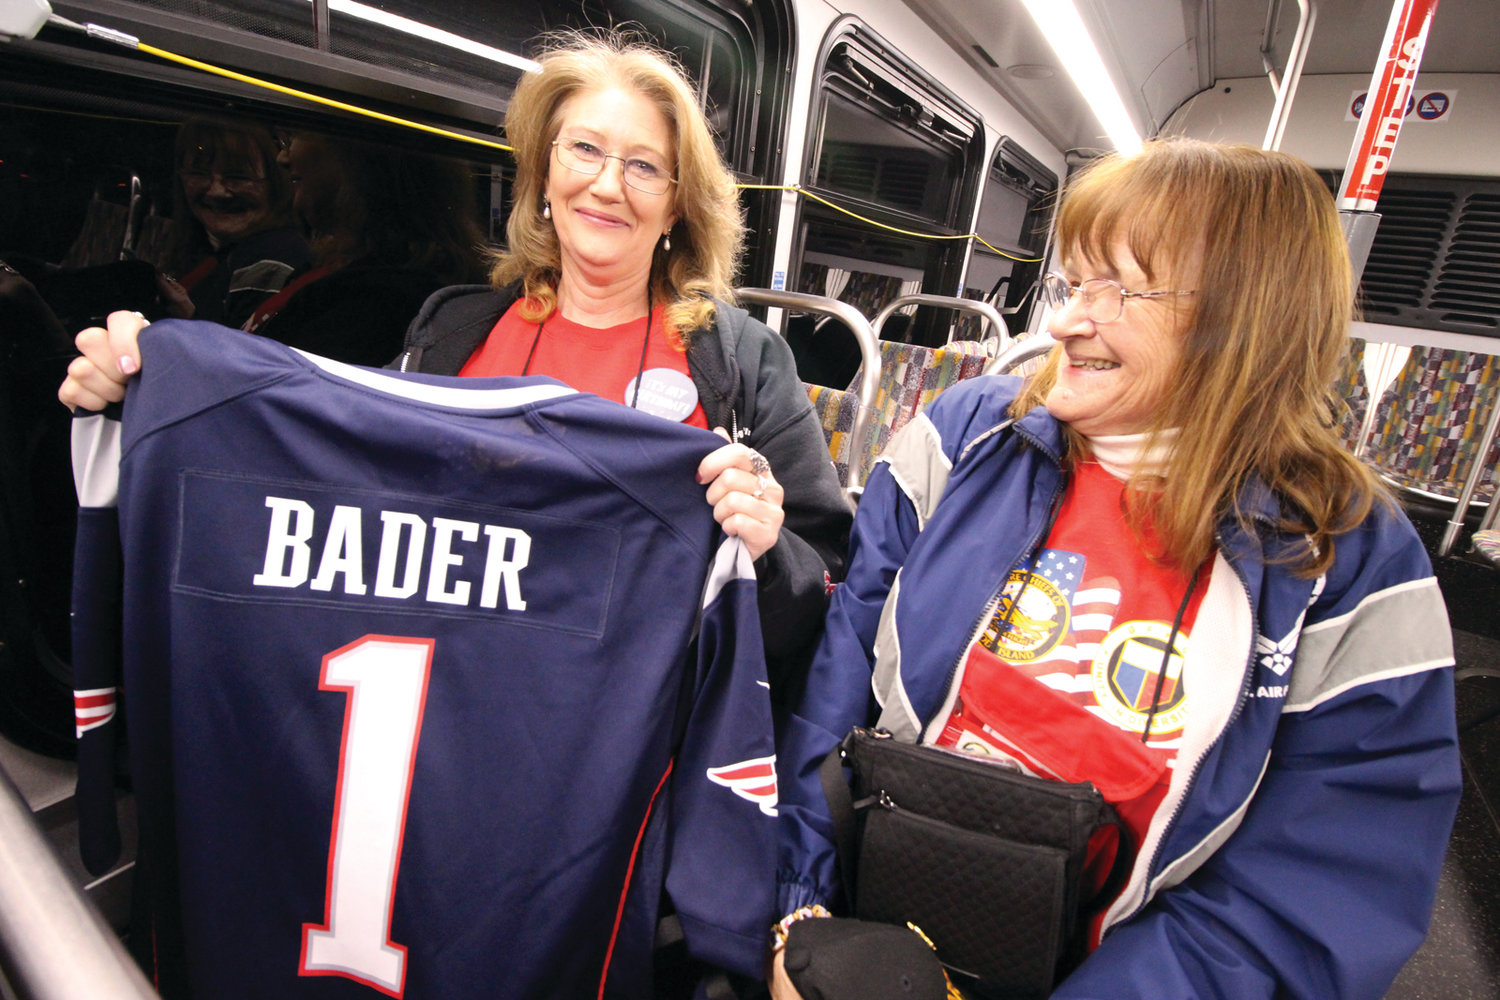 BIRTHDAY SURPRISE: Navy veteran Theresa Bader celebrated her birth on Saturday and, recognizing the special occasion, the New England Patriots gave her her own jersey. Bader served as a guardian to Susan Gustaitis during the Honor Flight.